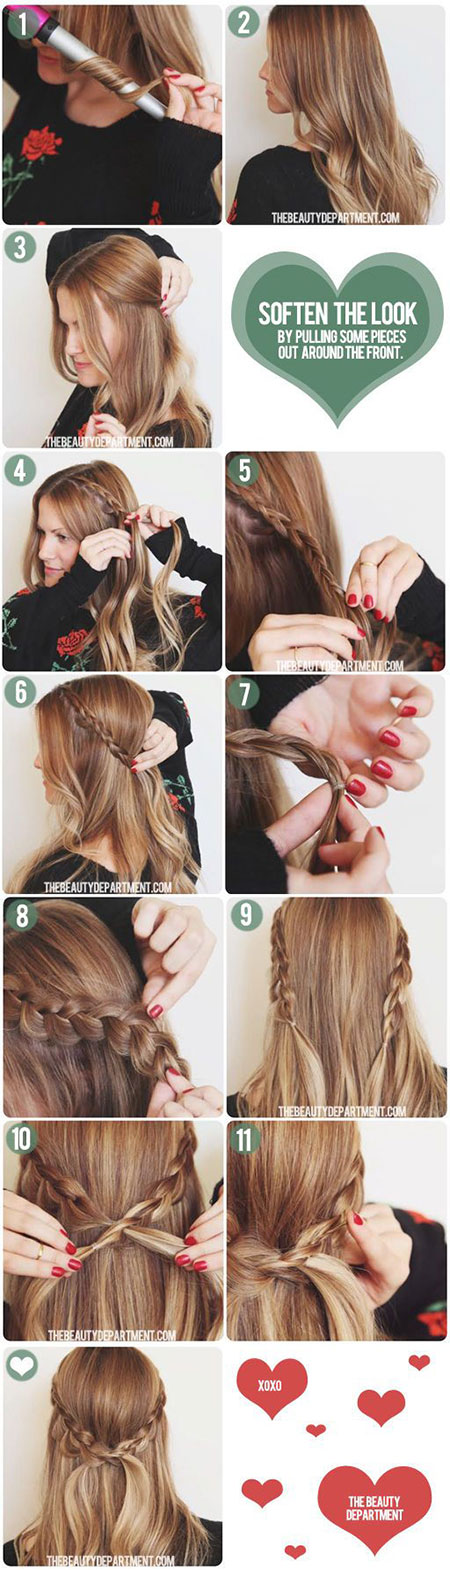 Easy-Valentines-Day-Hairstyle-Tutorials-For-Beginners-Learners-2016-7